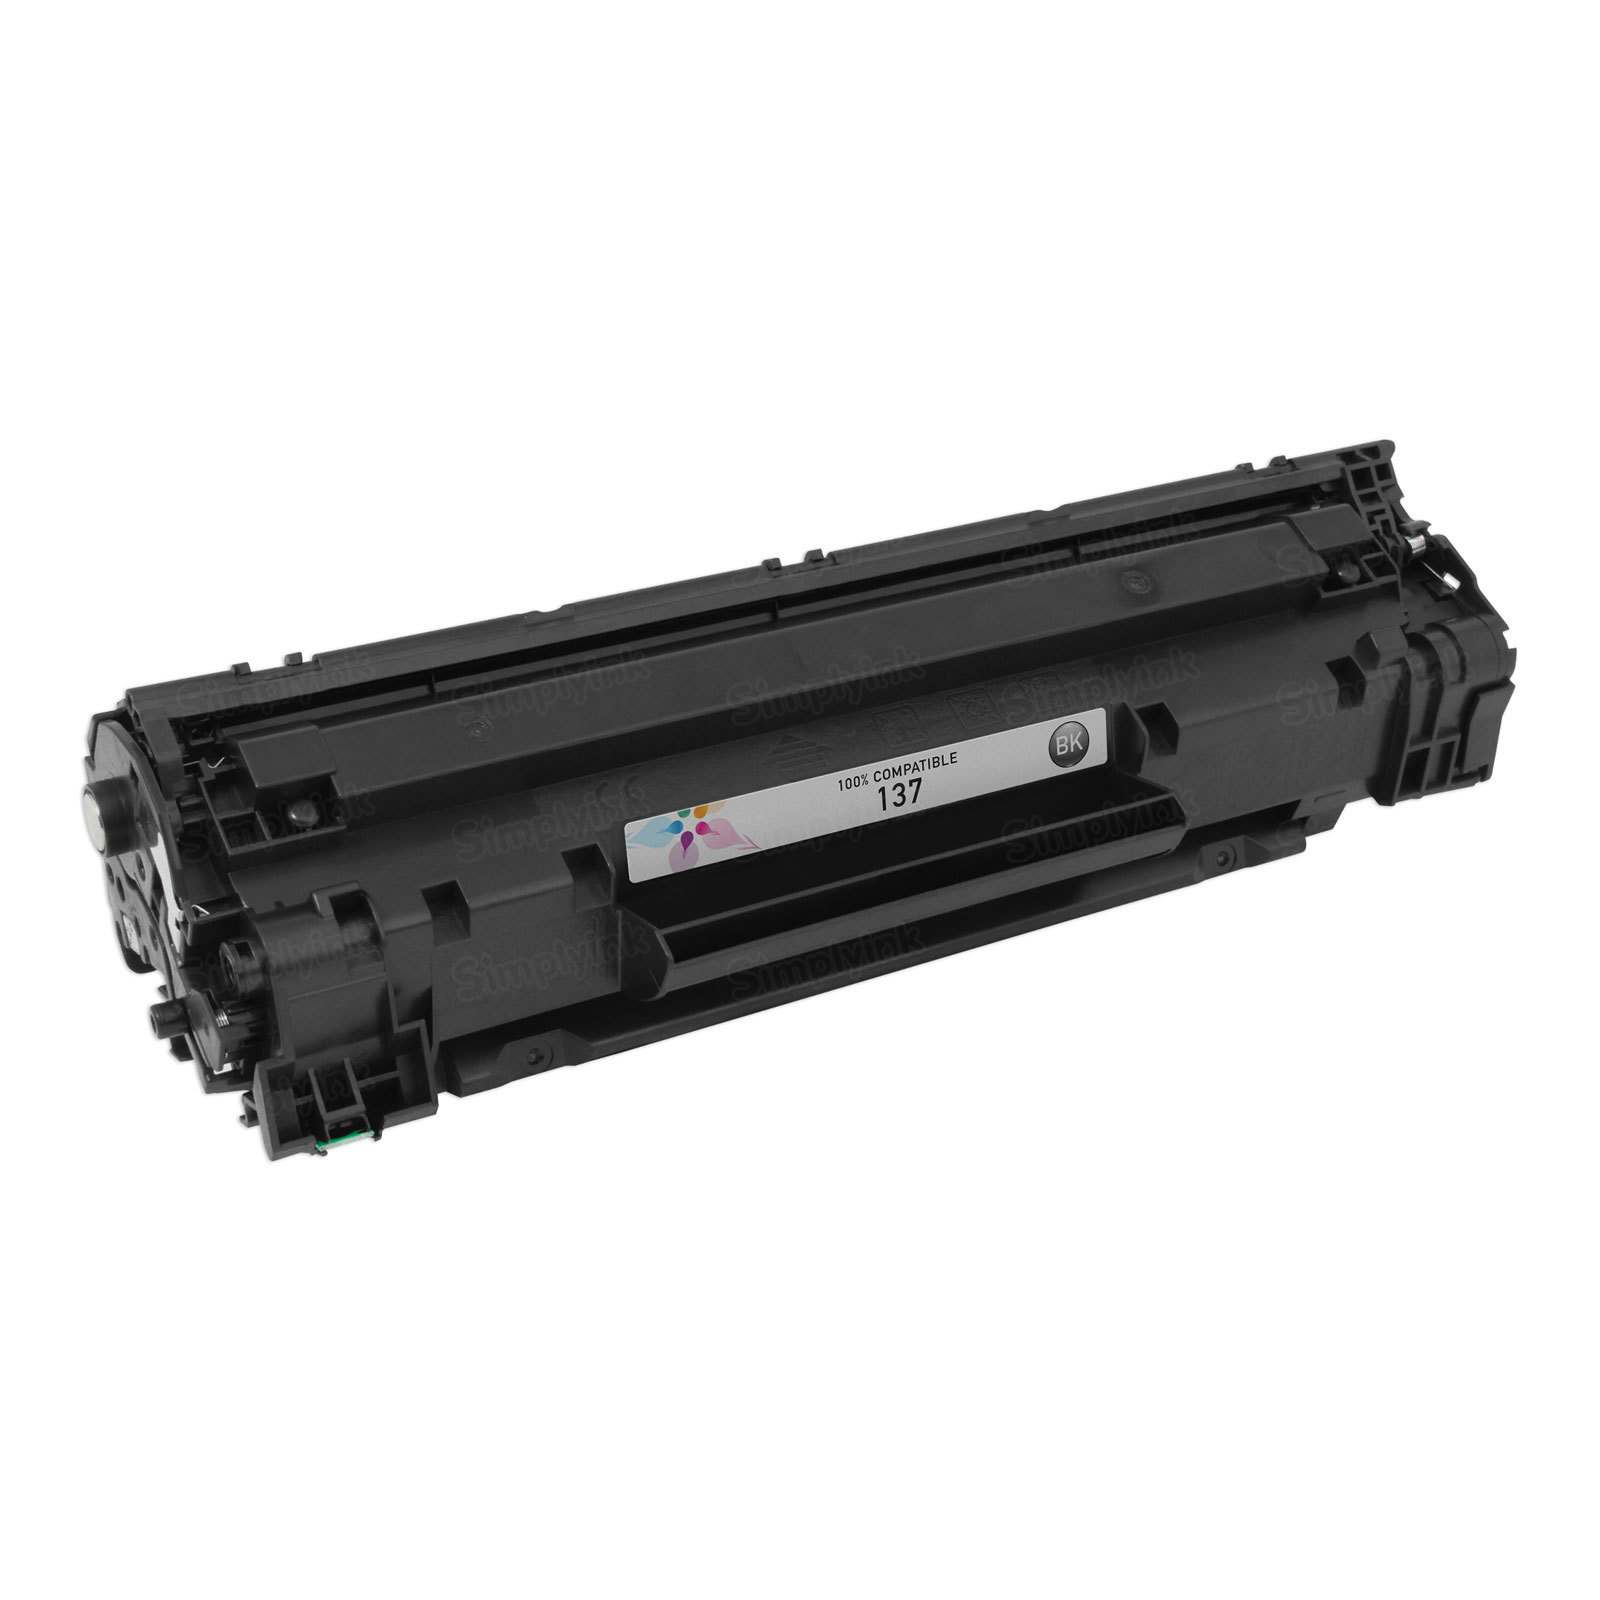 Compatible 137 Black Toner for Canon